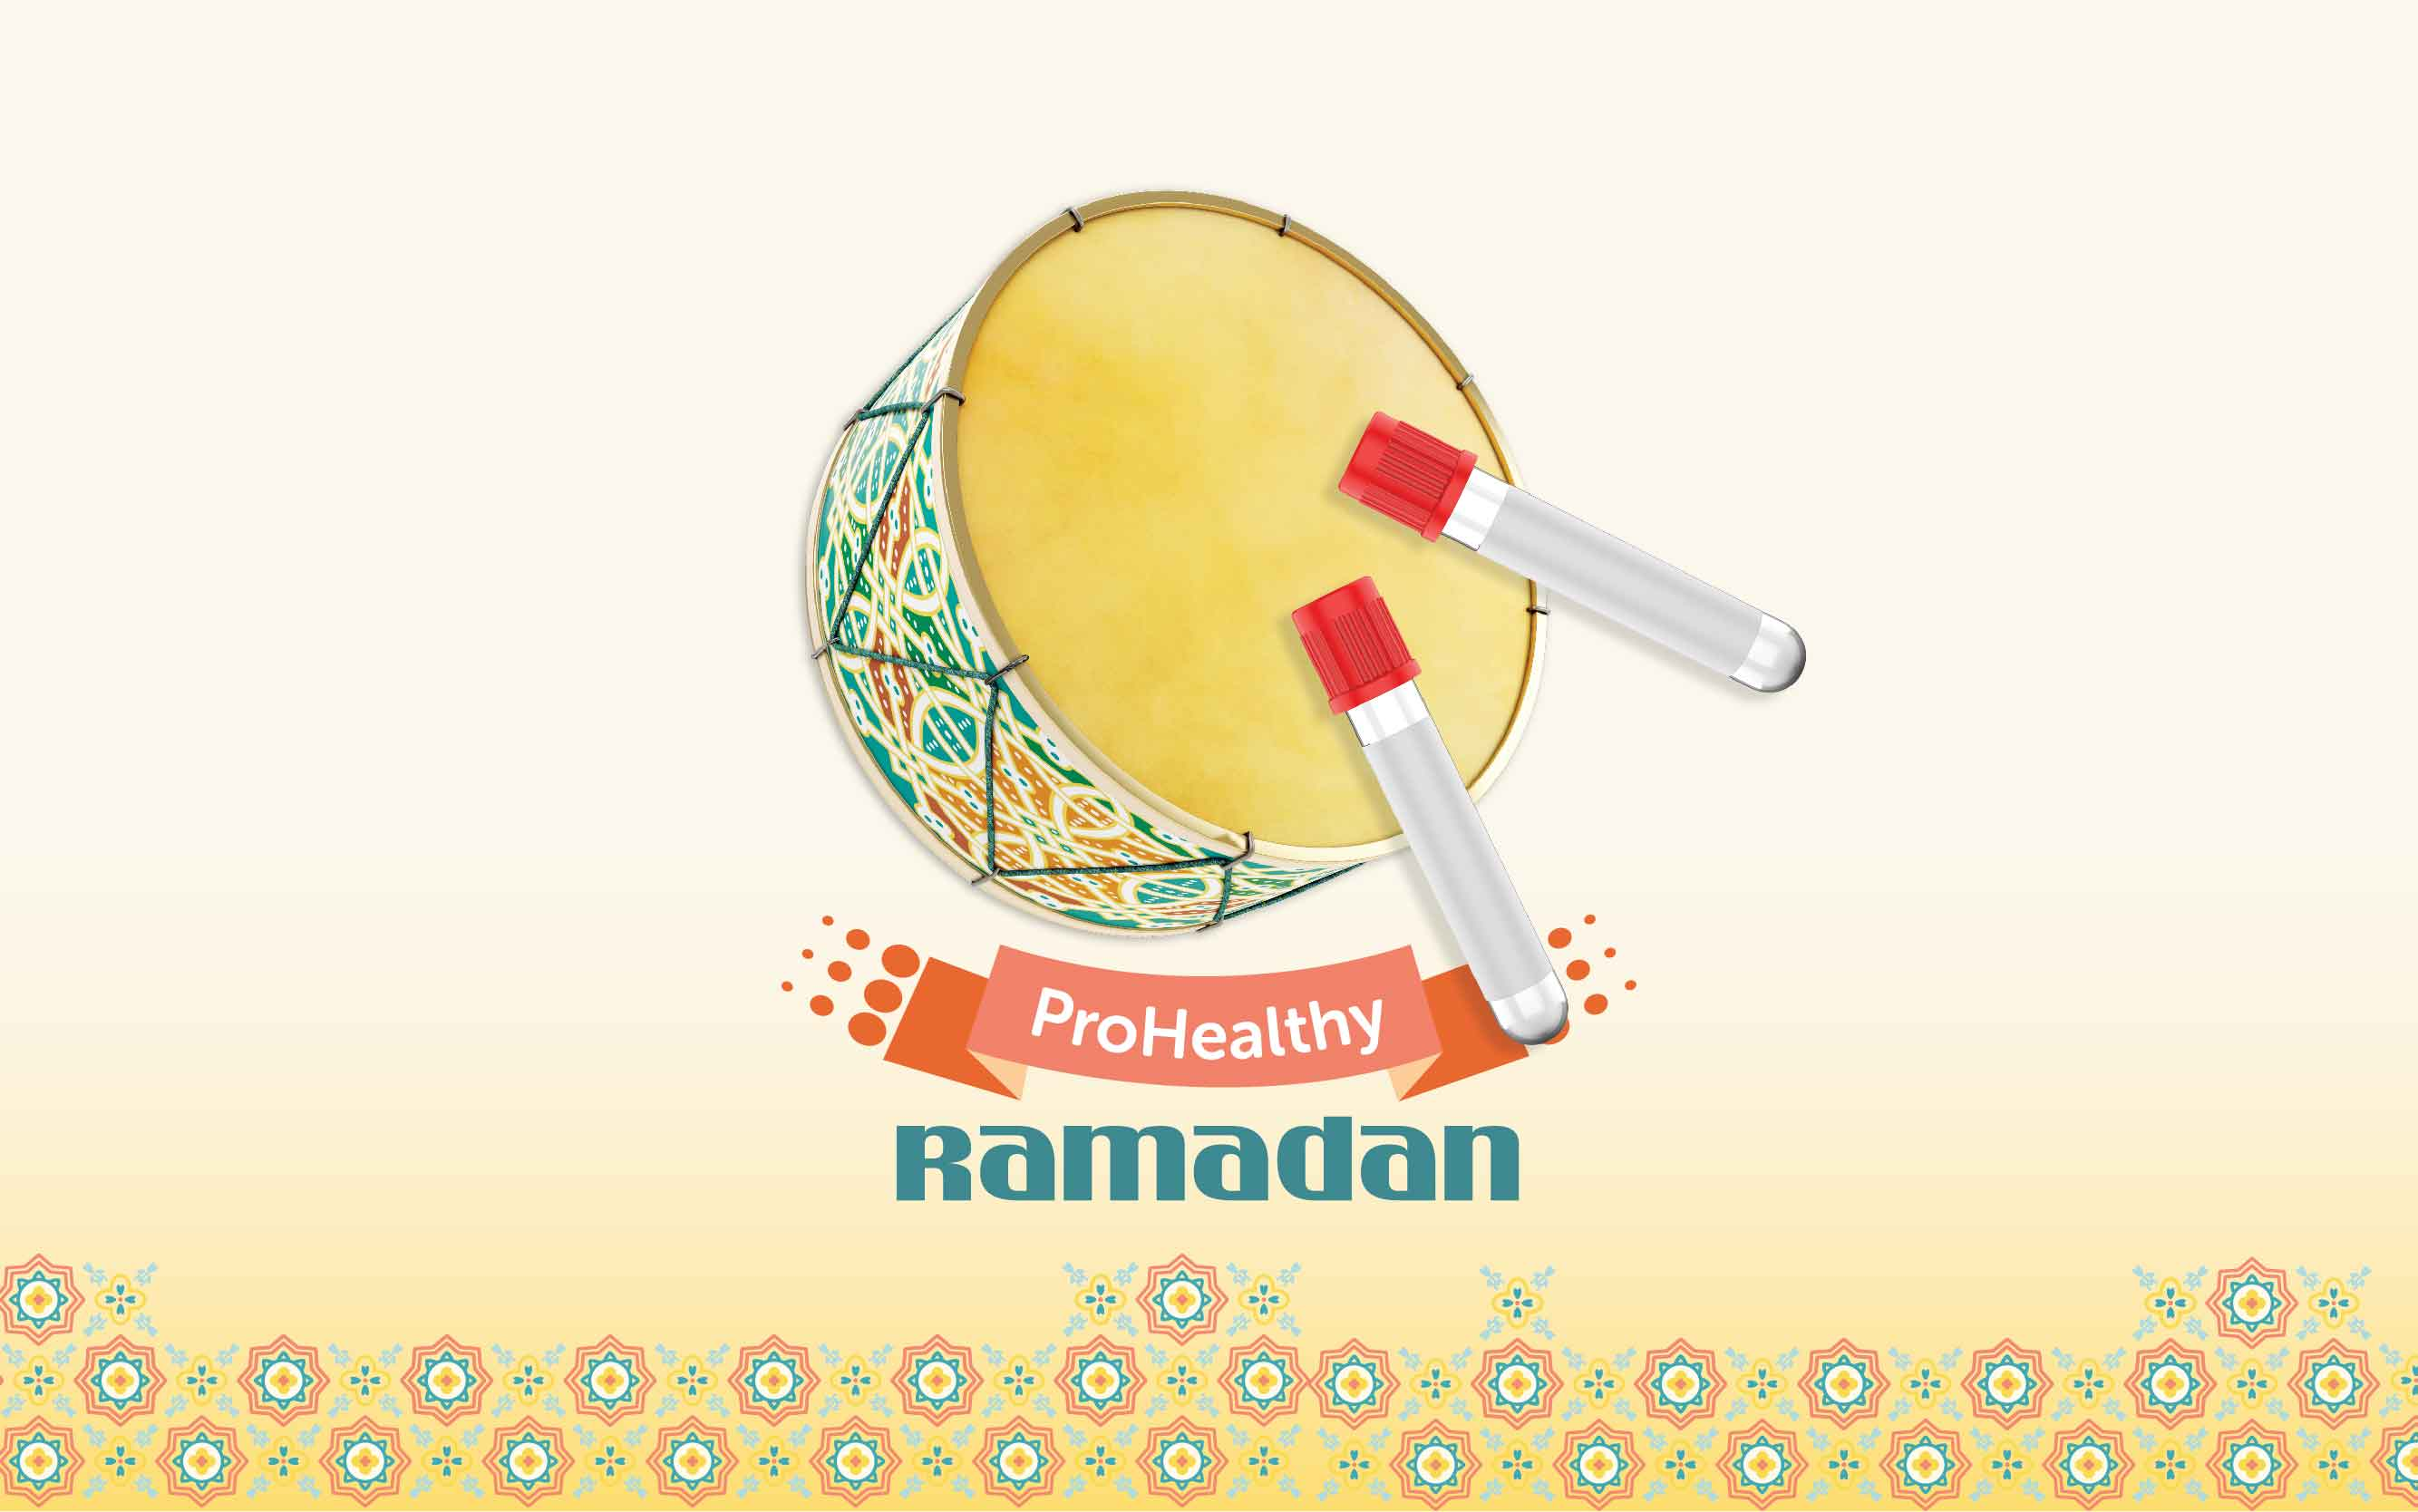 ProHealthy Ramadan